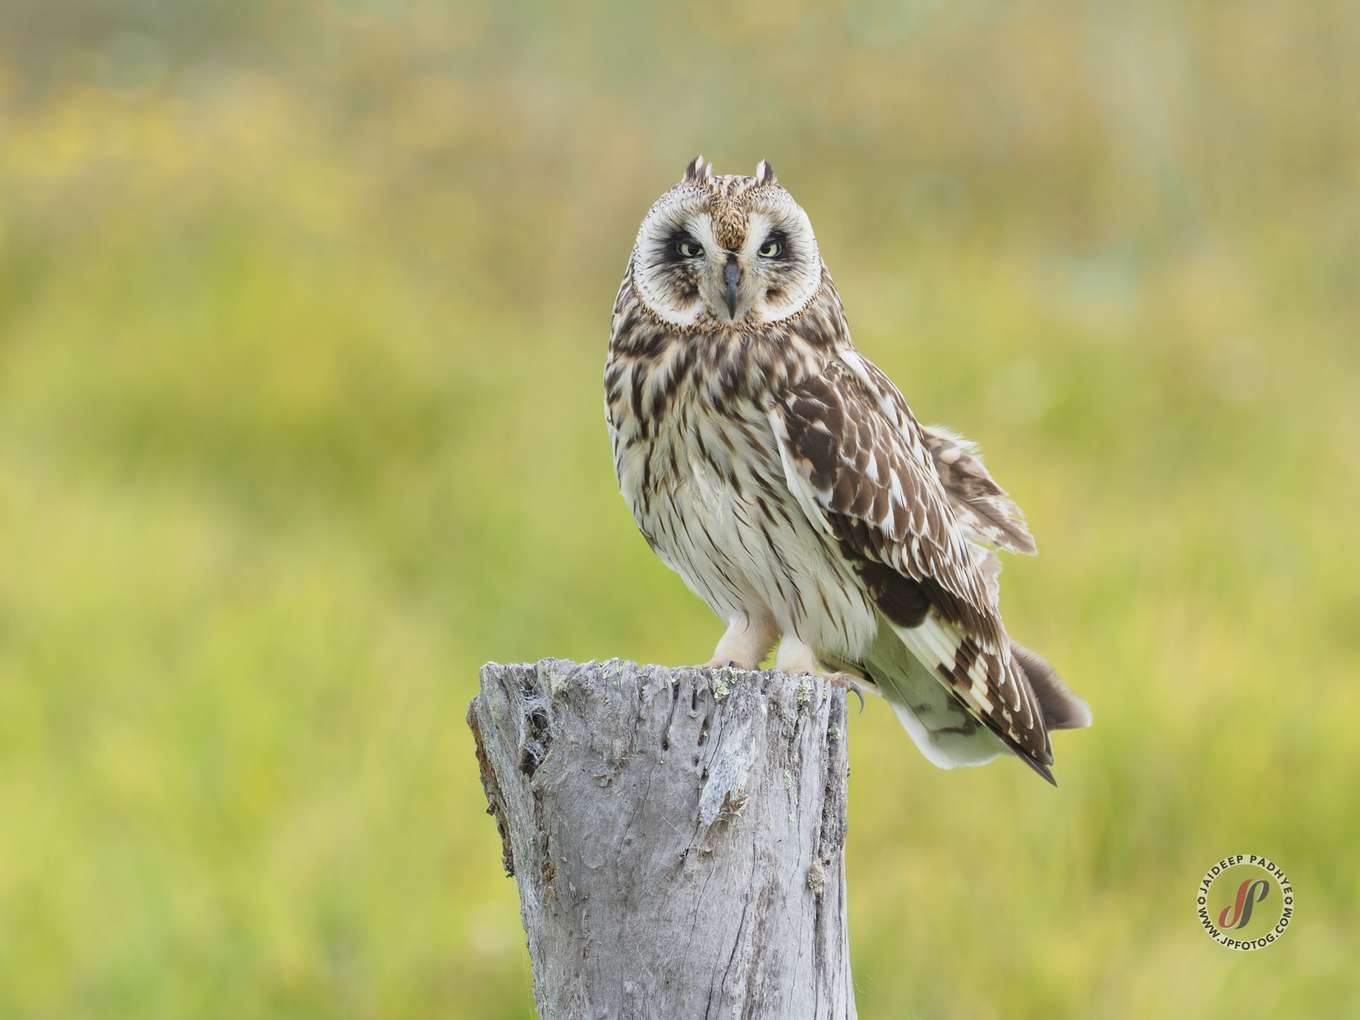 Hawaiian Short-eared Owl